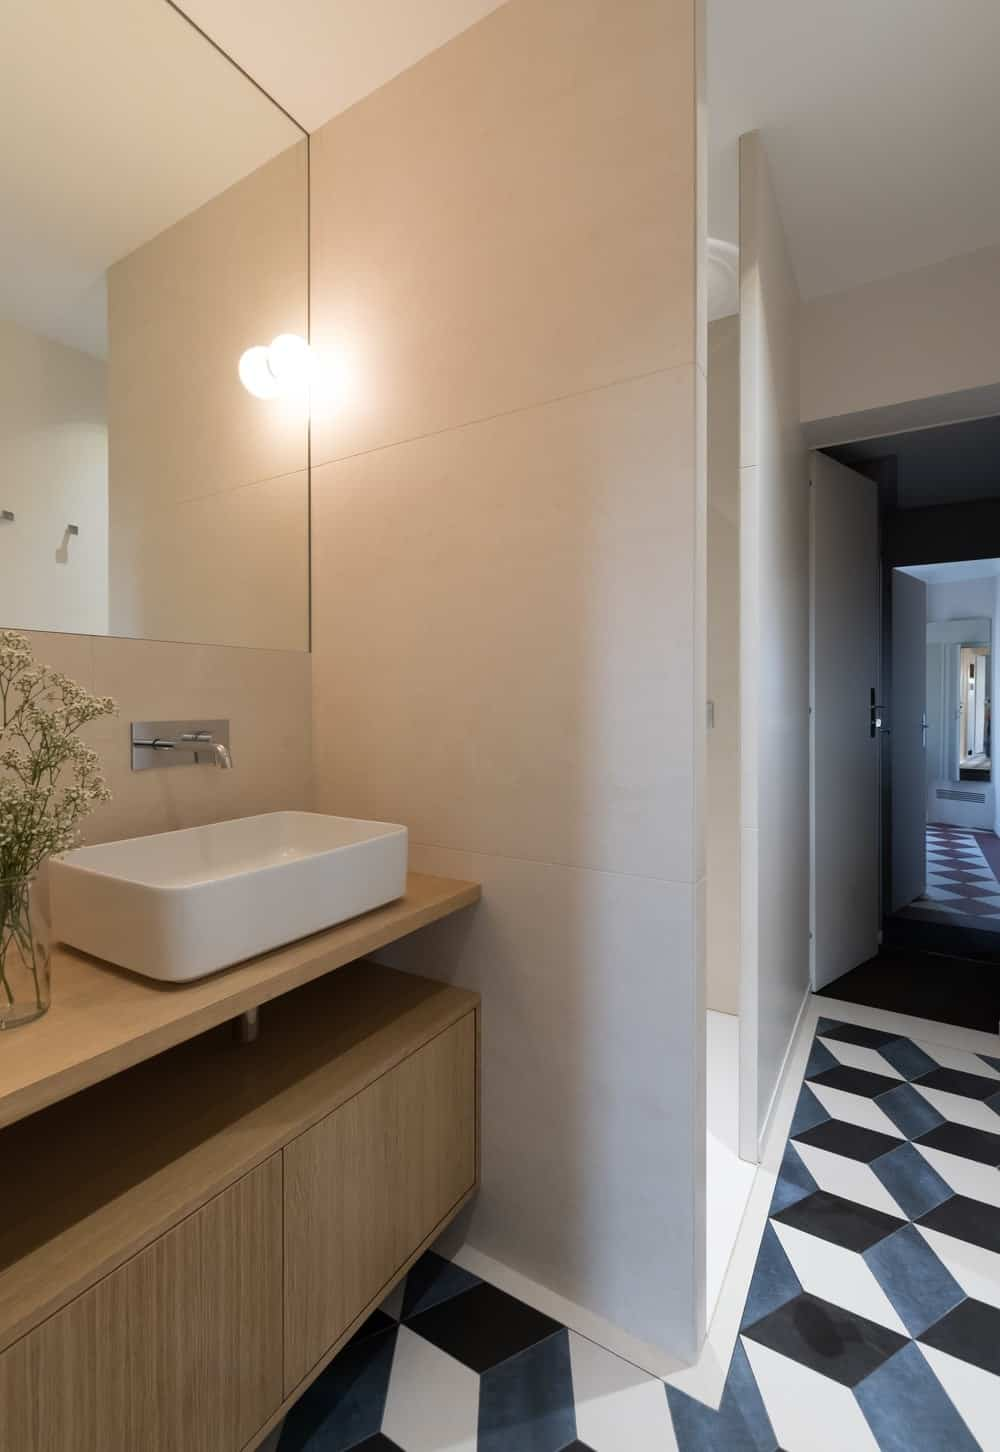 Contemporary bathroom featuring a vessel sink with a wall lighting. Photo credit: Mickaël Martins Afonso